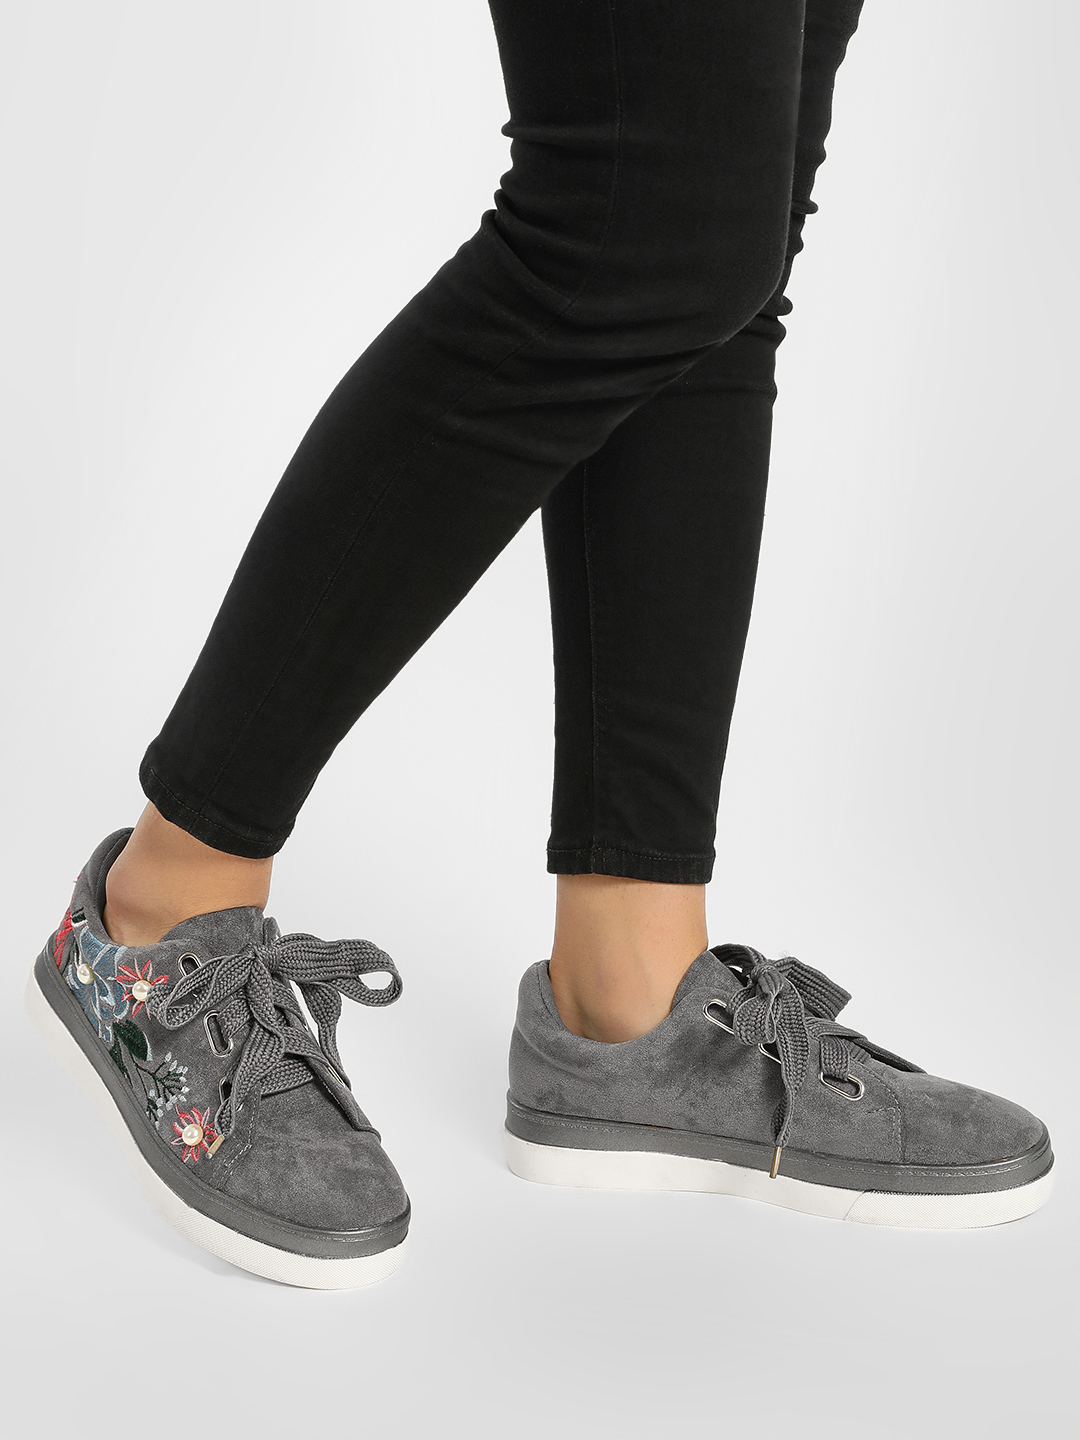 My Foot Couture Grey Pearl Embellished Applique Flower Detail Trainers 1